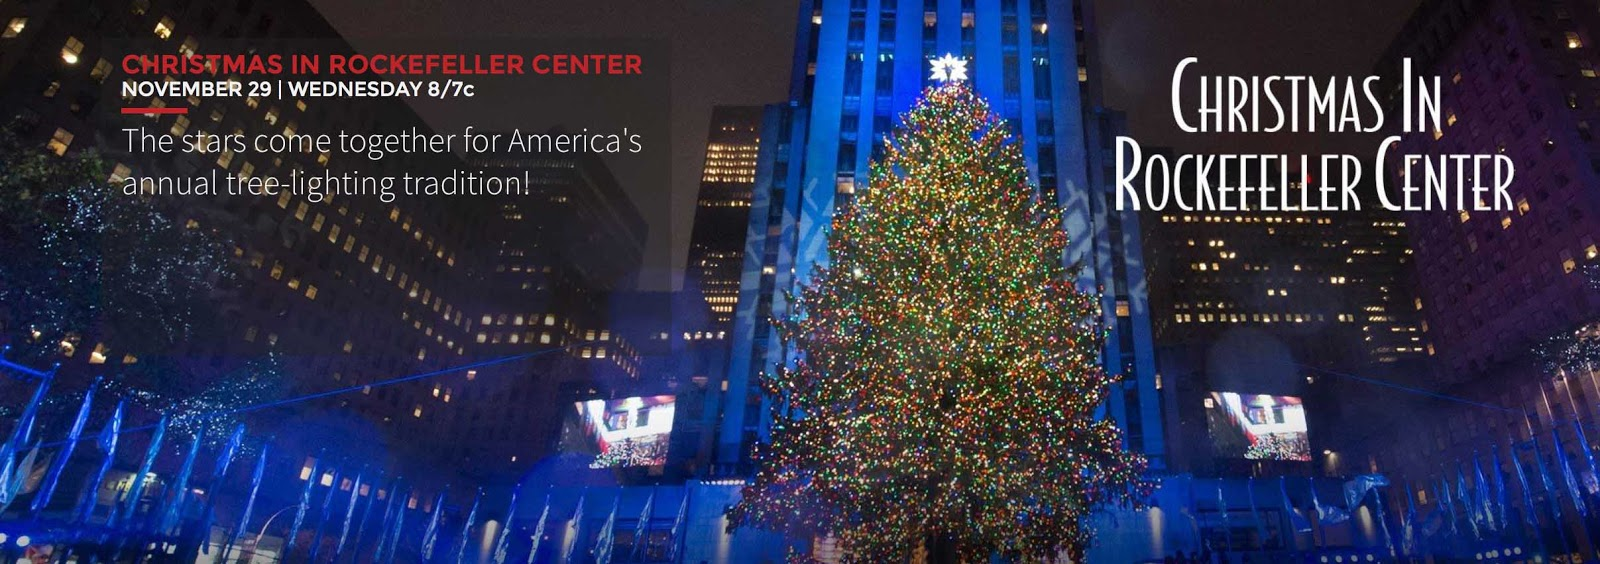 CHRISTMAS IN ROCKEFELLER CENTER - NOVEMBER 29 | WEDNESDAY 8/7c. The stars come together for Americau0027s annual tree-lighting tradition!  sc 1 st  New York Travel Guide Vacation Ideas and City Tours & New York Travel Guide Vacation Ideas and City Tours - Your New York ...